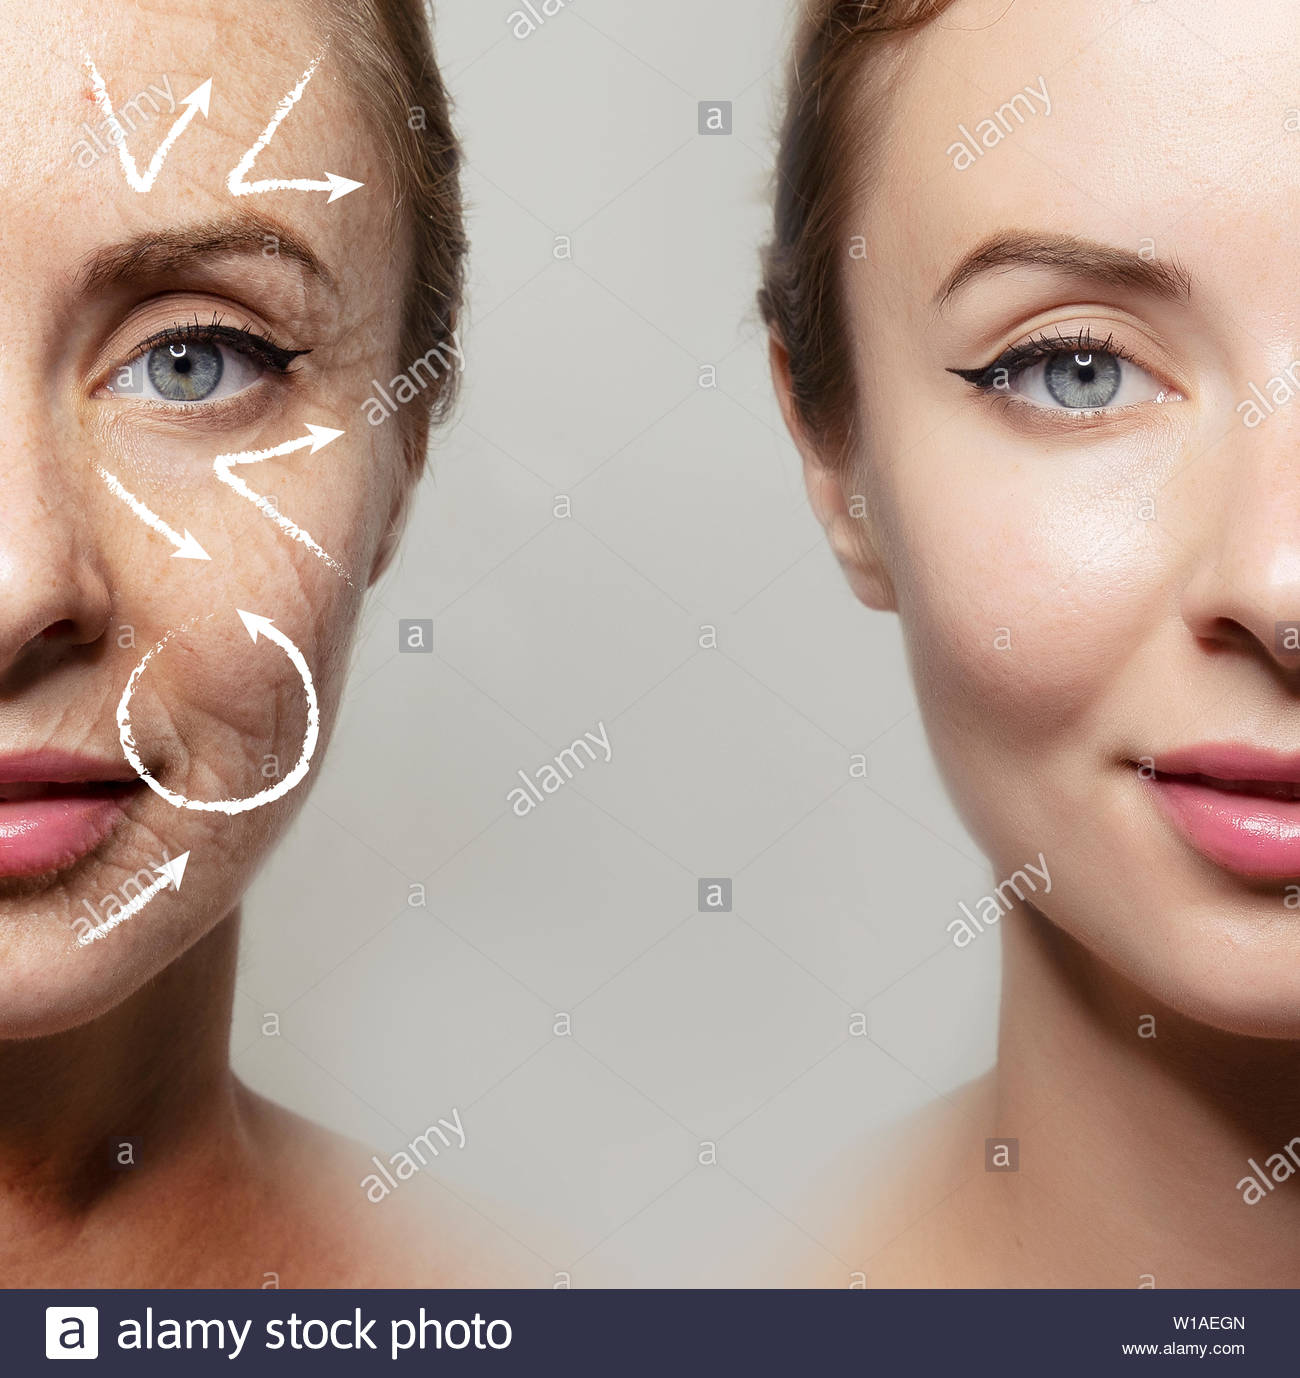 Health supplement female face anti-aging beauty cosmetics banner - Stock Image